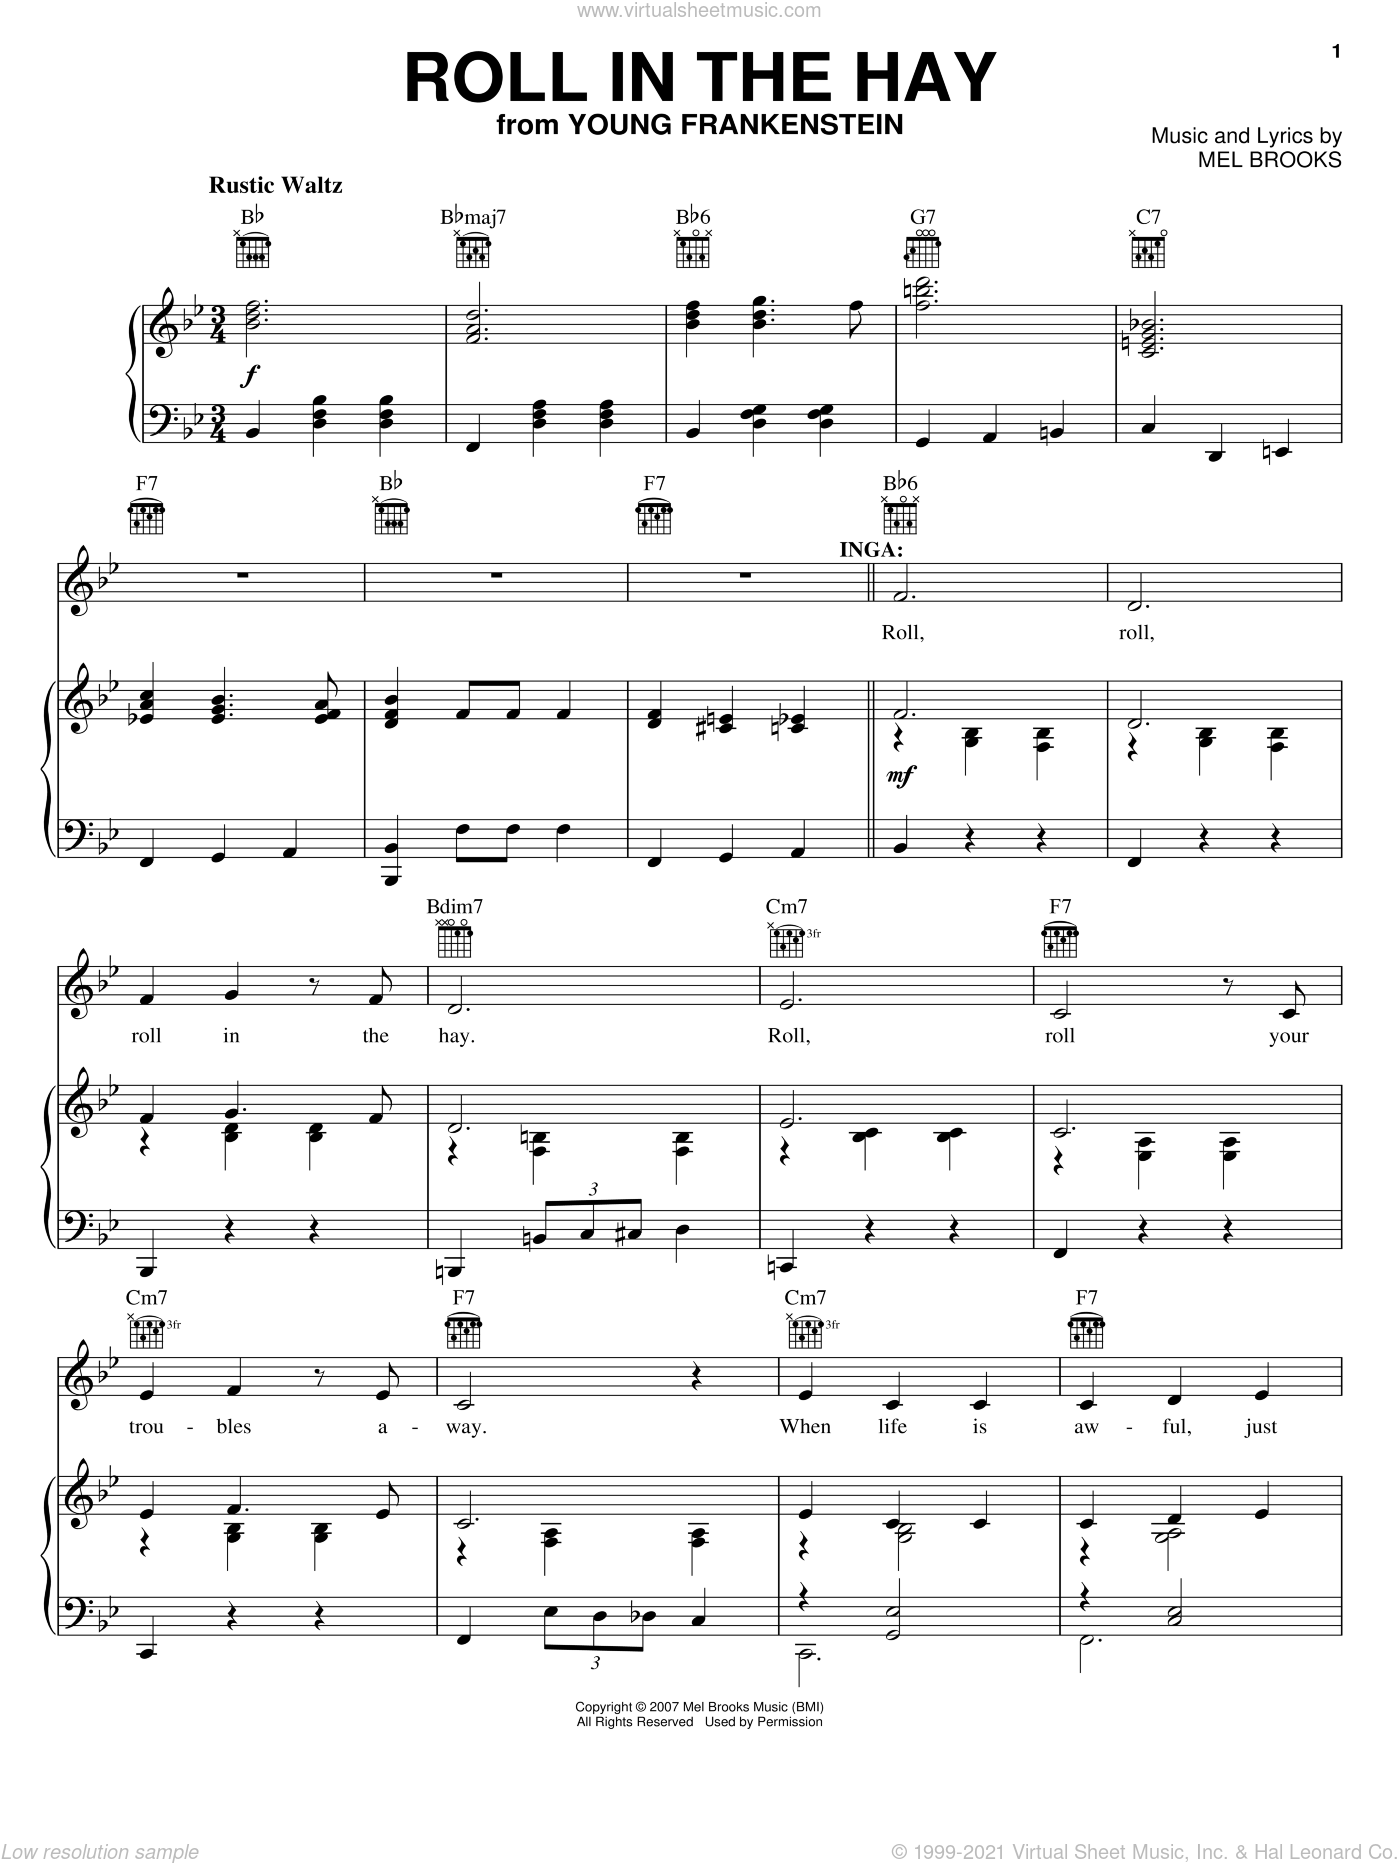 Roll In The Hay sheet music for voice, piano or guitar by Thomas Meehan